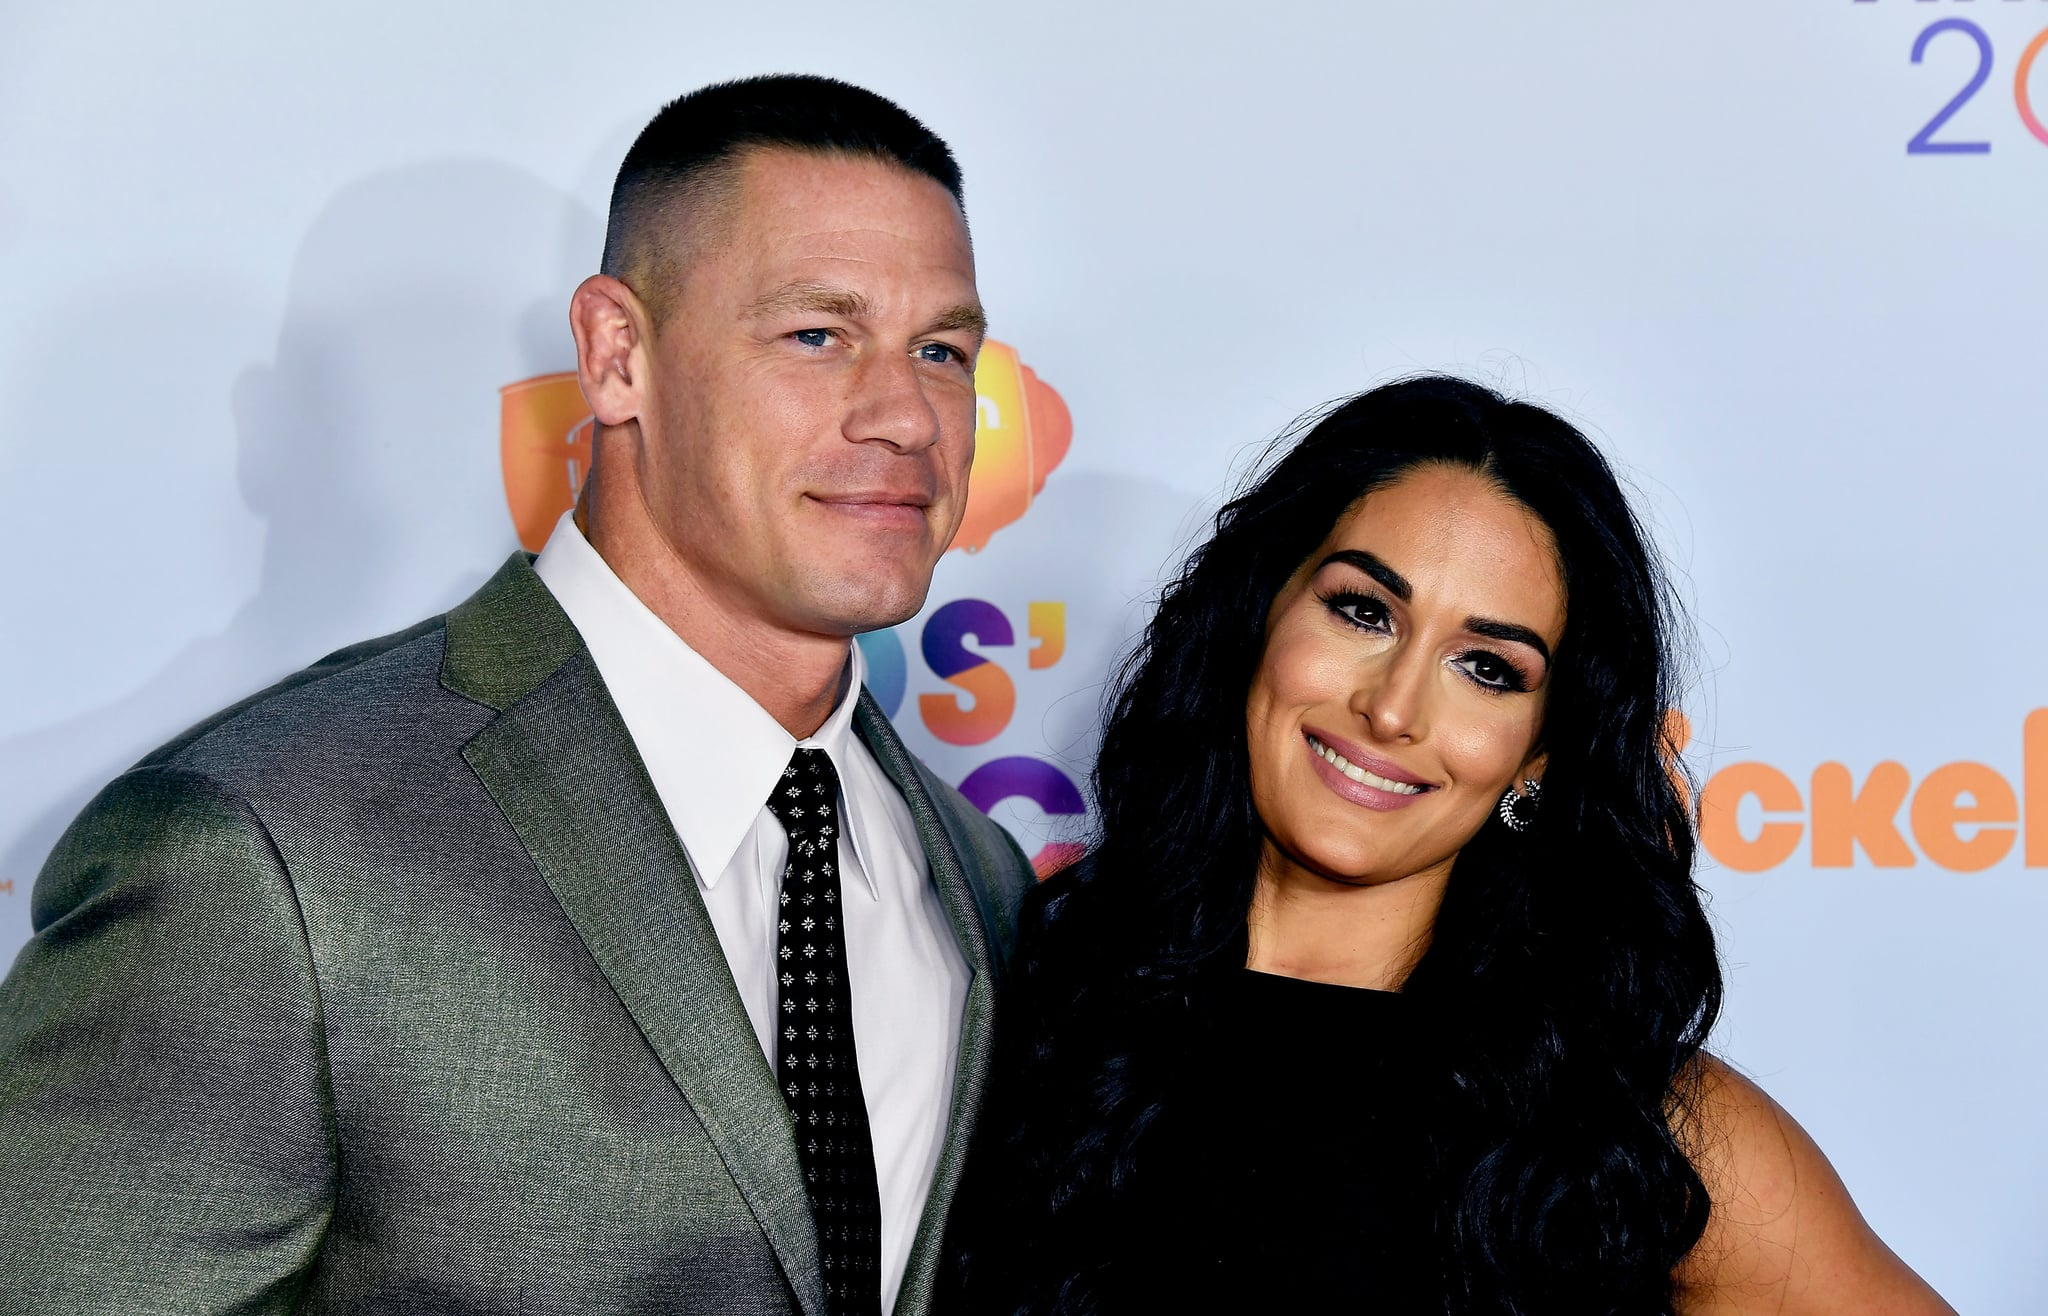 LOS ANGELES, CA - MARCH 11:  Host John Cena and Nikki Bella at Nickelodeon's 2017 Kids' Choice Awards at USC Galen Center on March 11, 2017 in Los Angeles, California.  (Photo by Frazer Harrison/Getty Images)